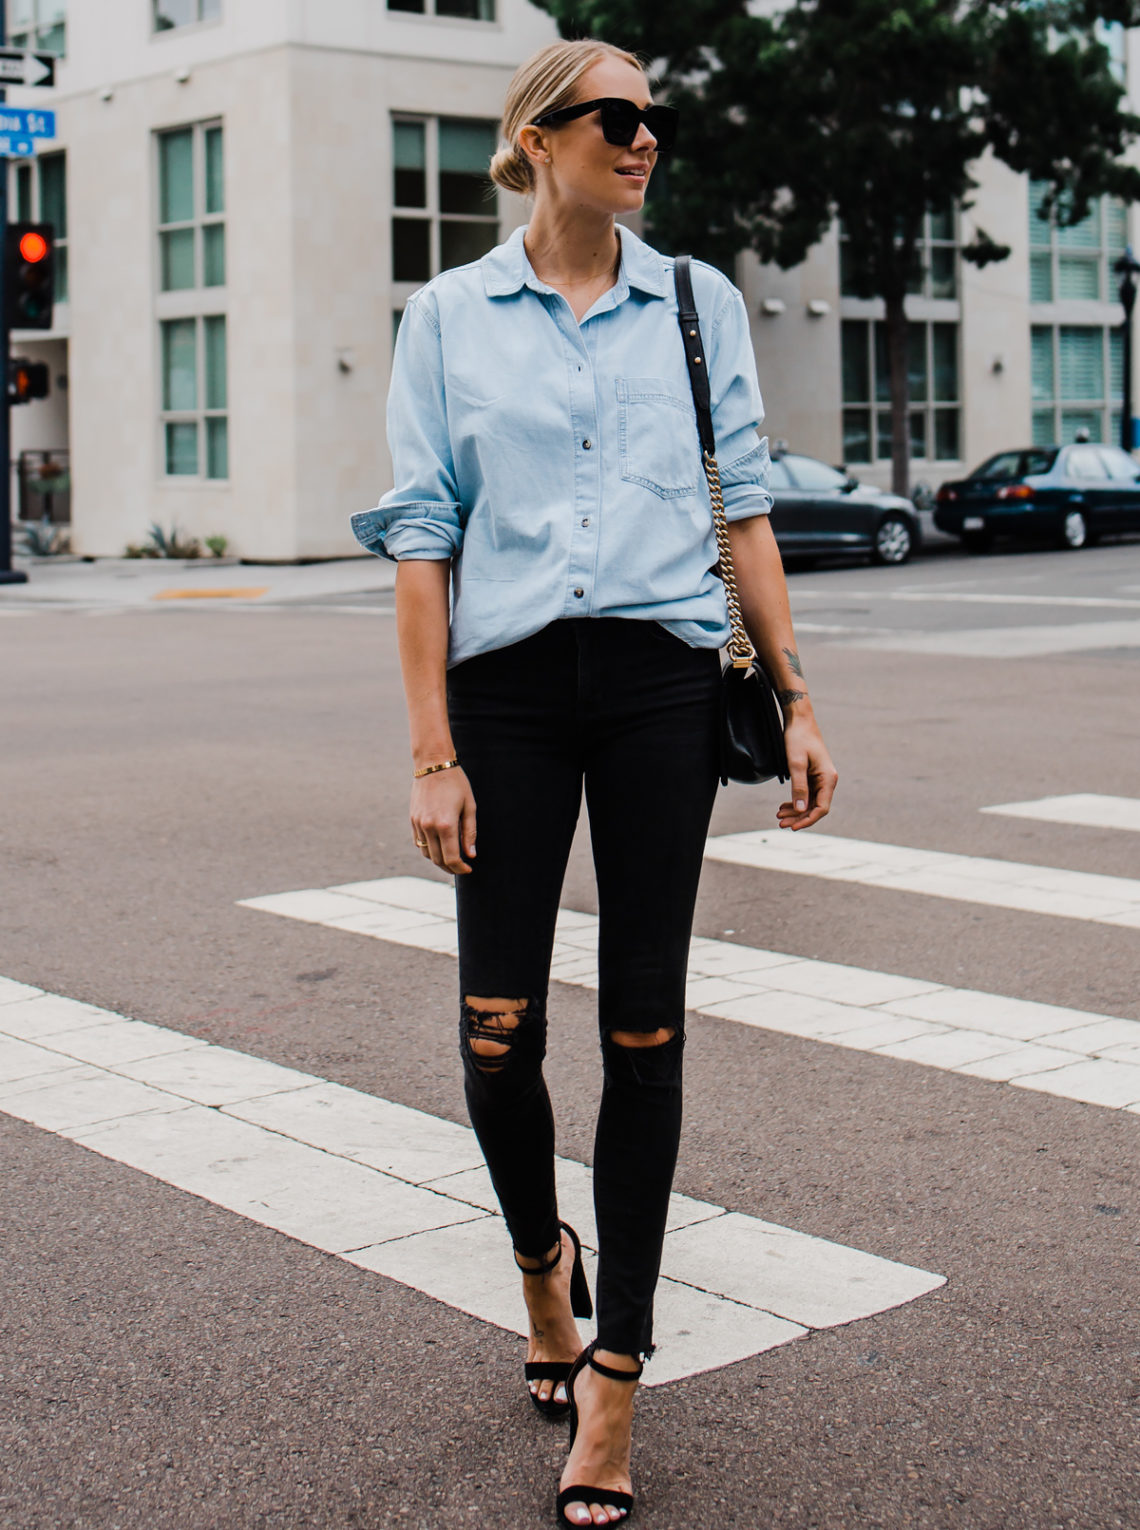 Blonde Woman Wearing Topshop Oversized Denim Shirt Topshop Black Ripped Skinny Jeans Steve Madden Black Ankle Strap Heeled Sandals Fashion Jackson San Diego Blogger Fashion Blogger Street Style